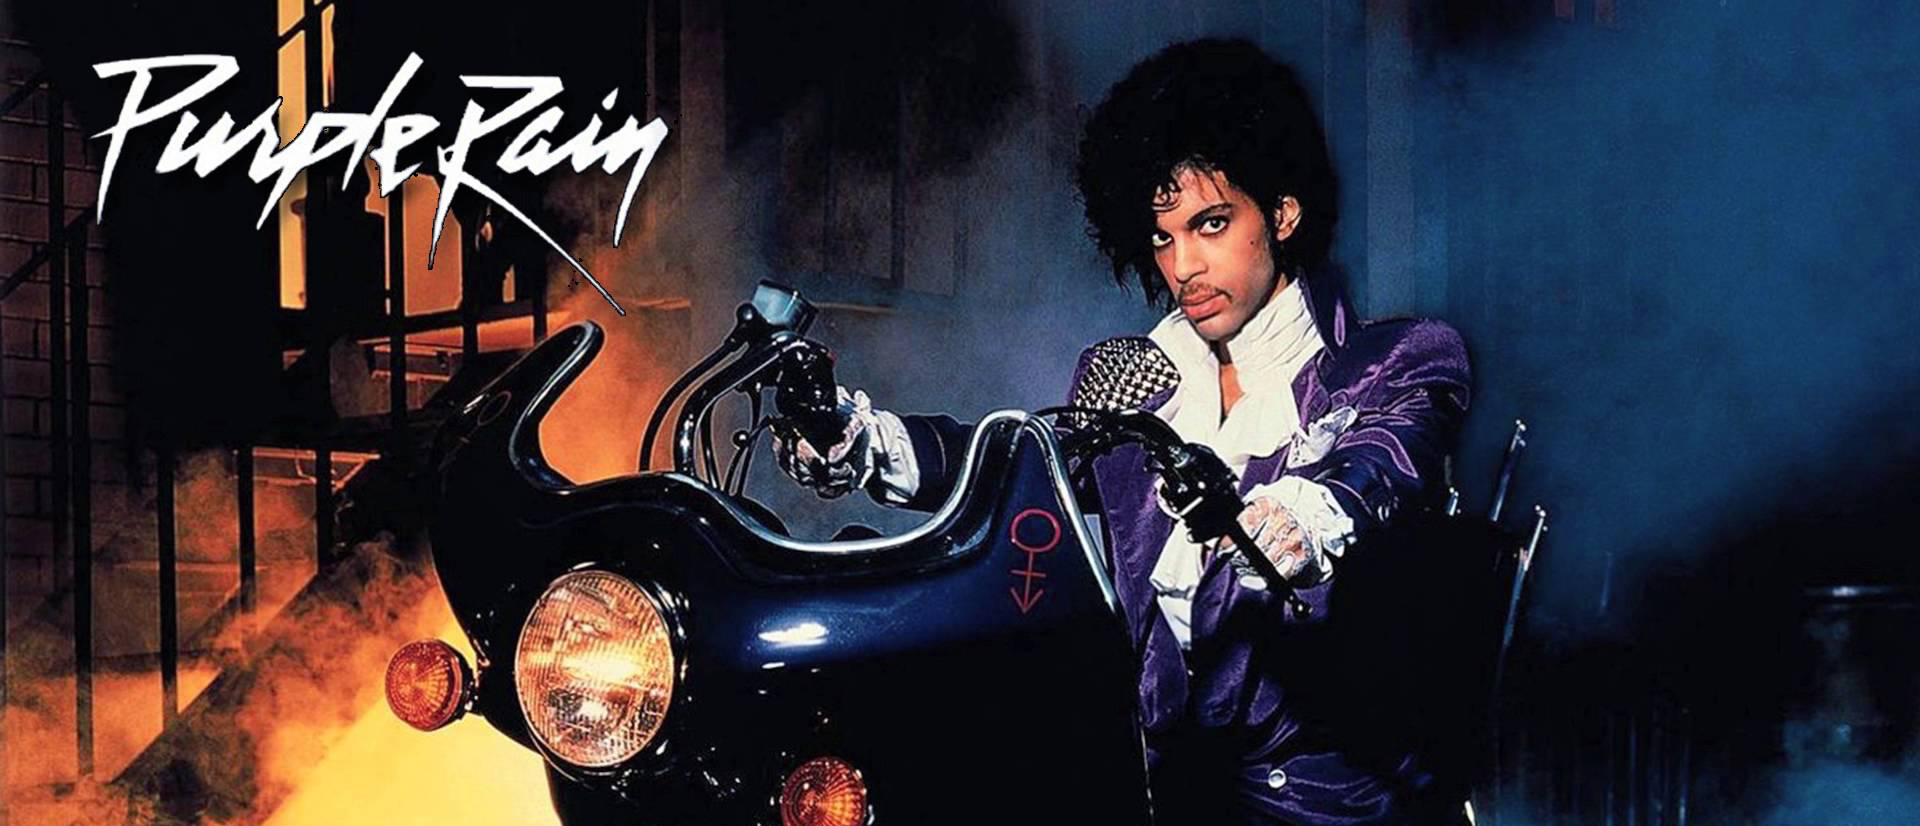 A beginner's guide to Prince